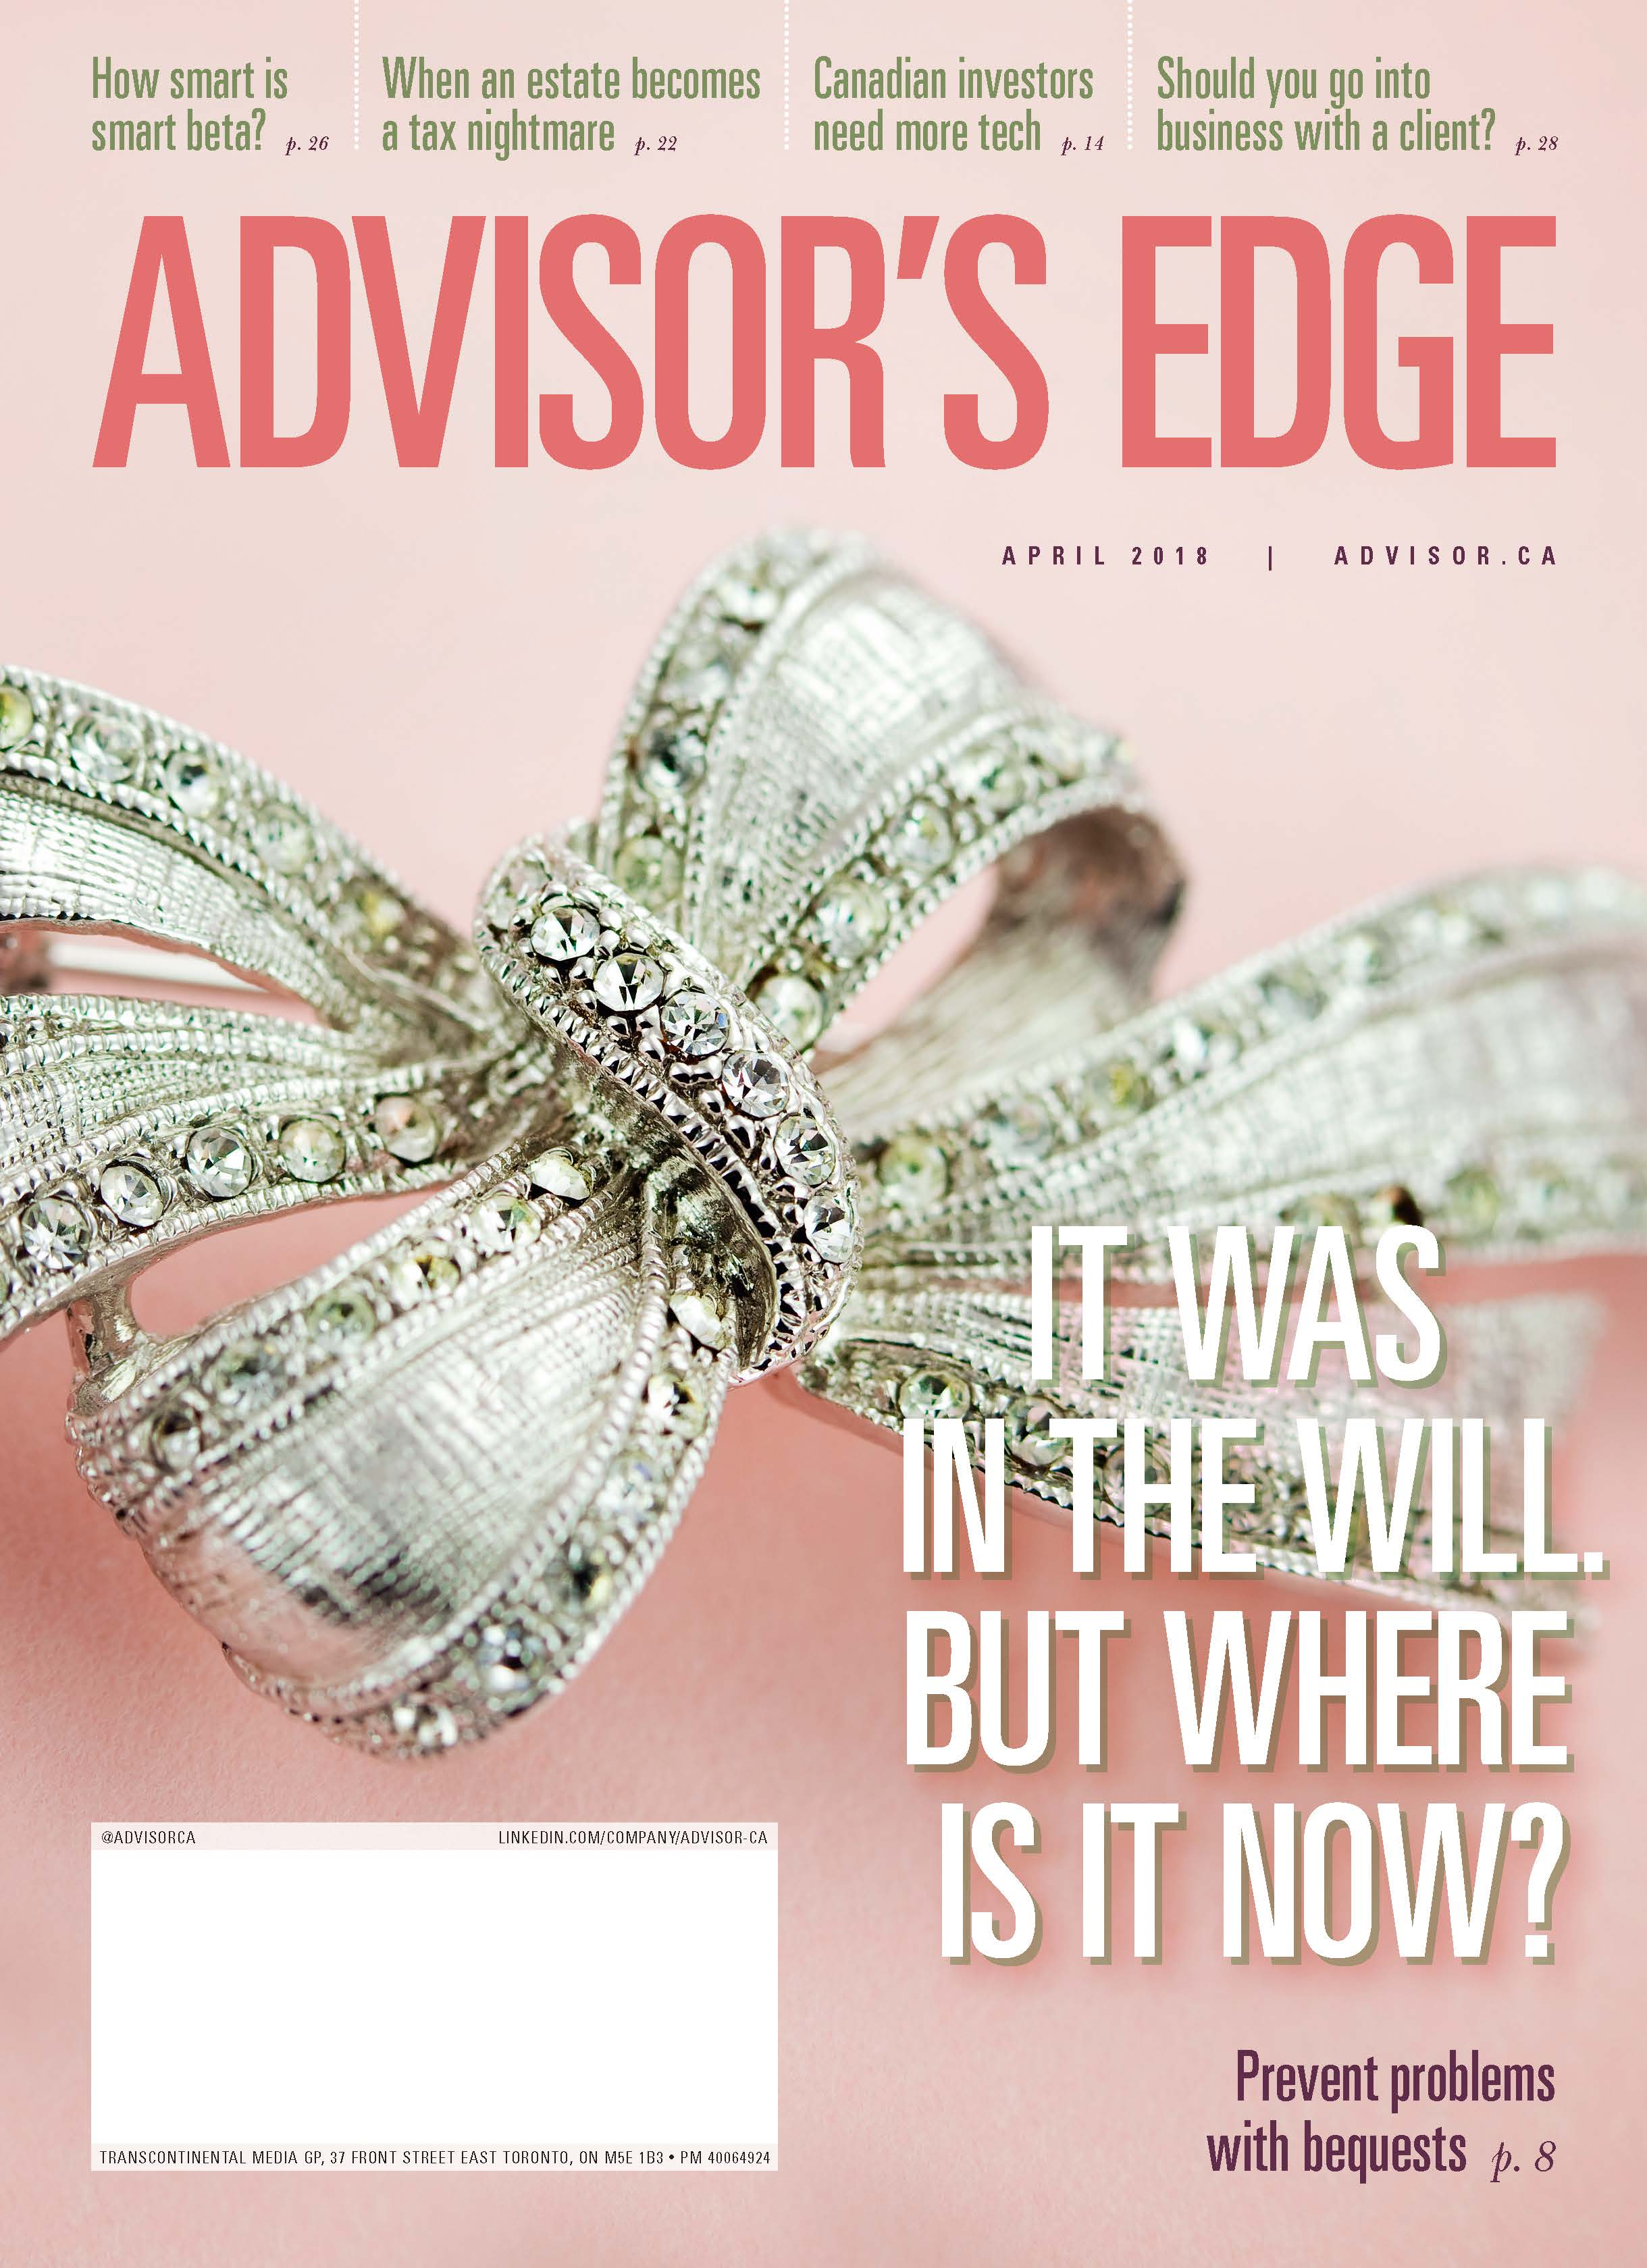 Advisor's Edge – 1 avril 2018